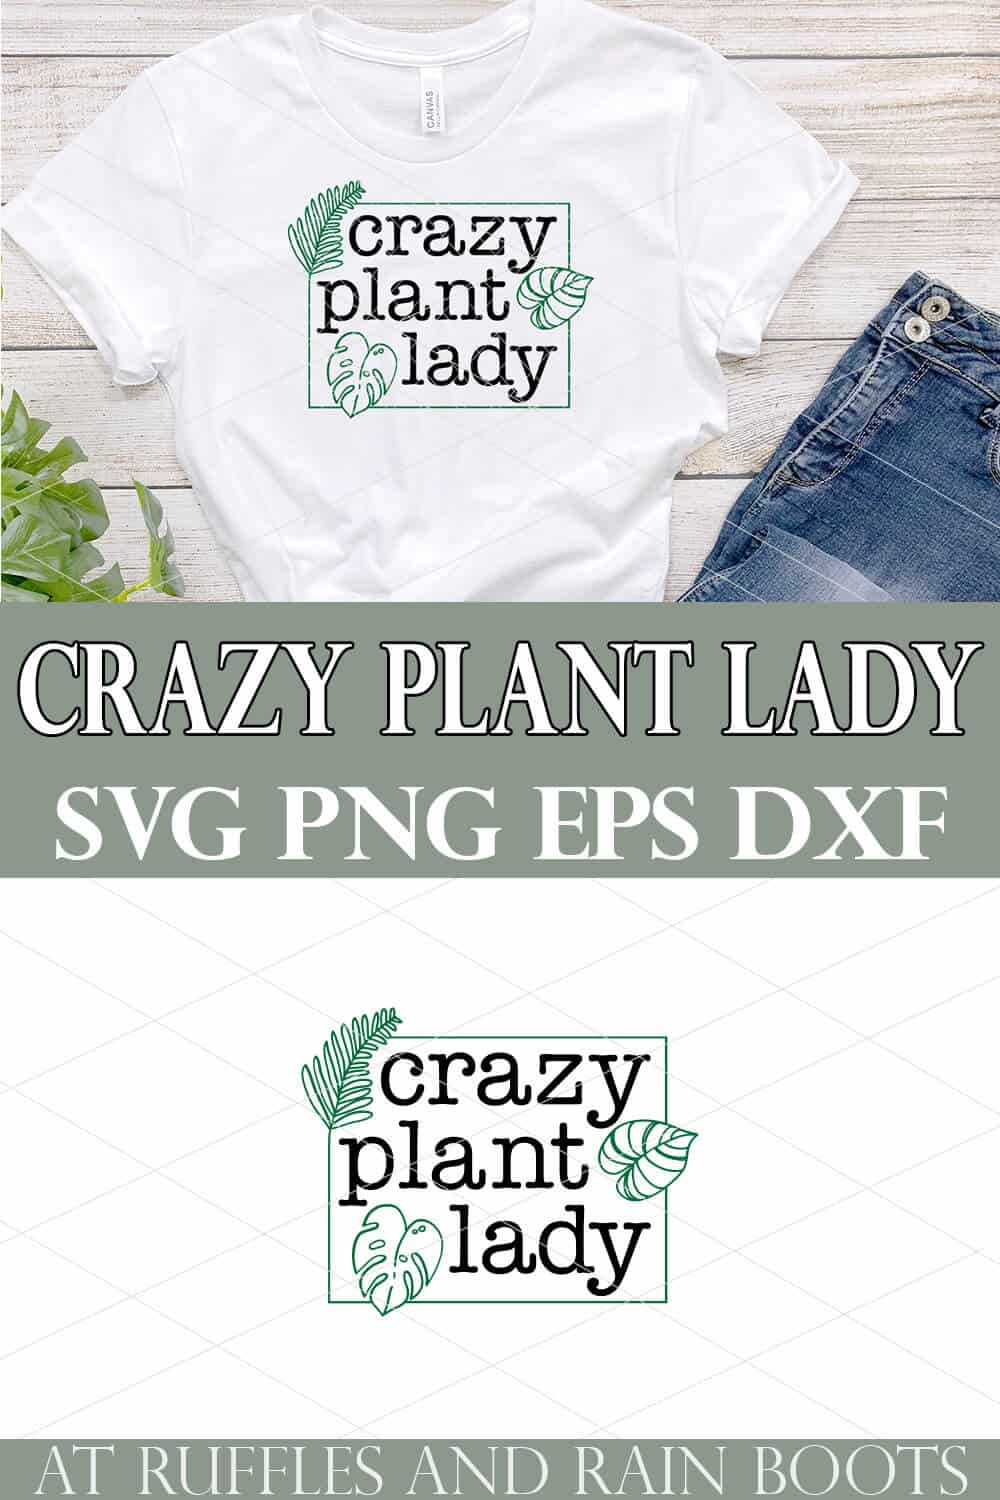 collage of crazy plant lady svg on white t shirt with jeans and wood background